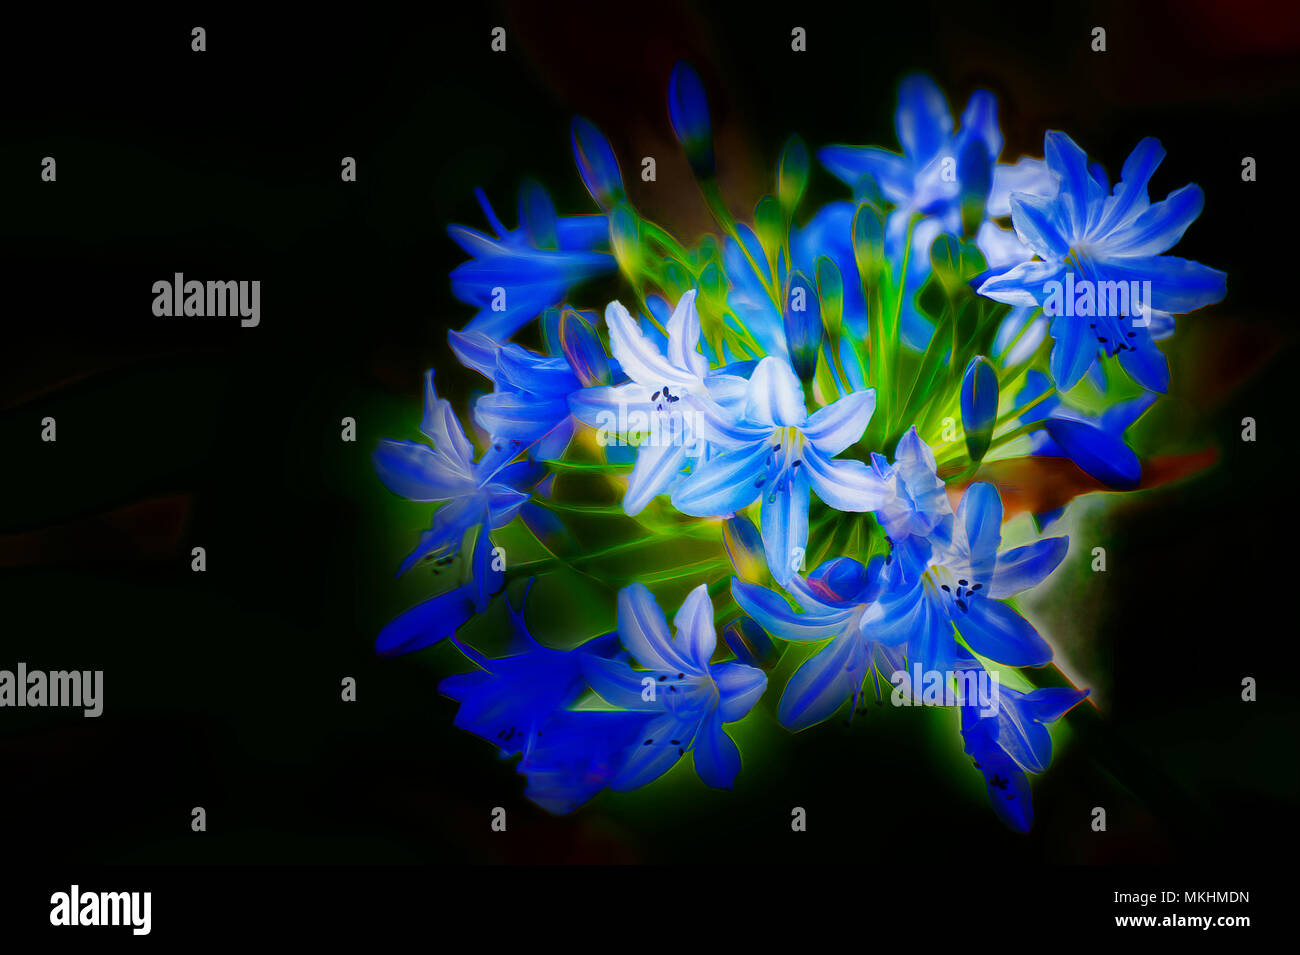 Digitally enhanced image of a cluster of delicate blue flowers with a black background and available copy space. - Stock Image